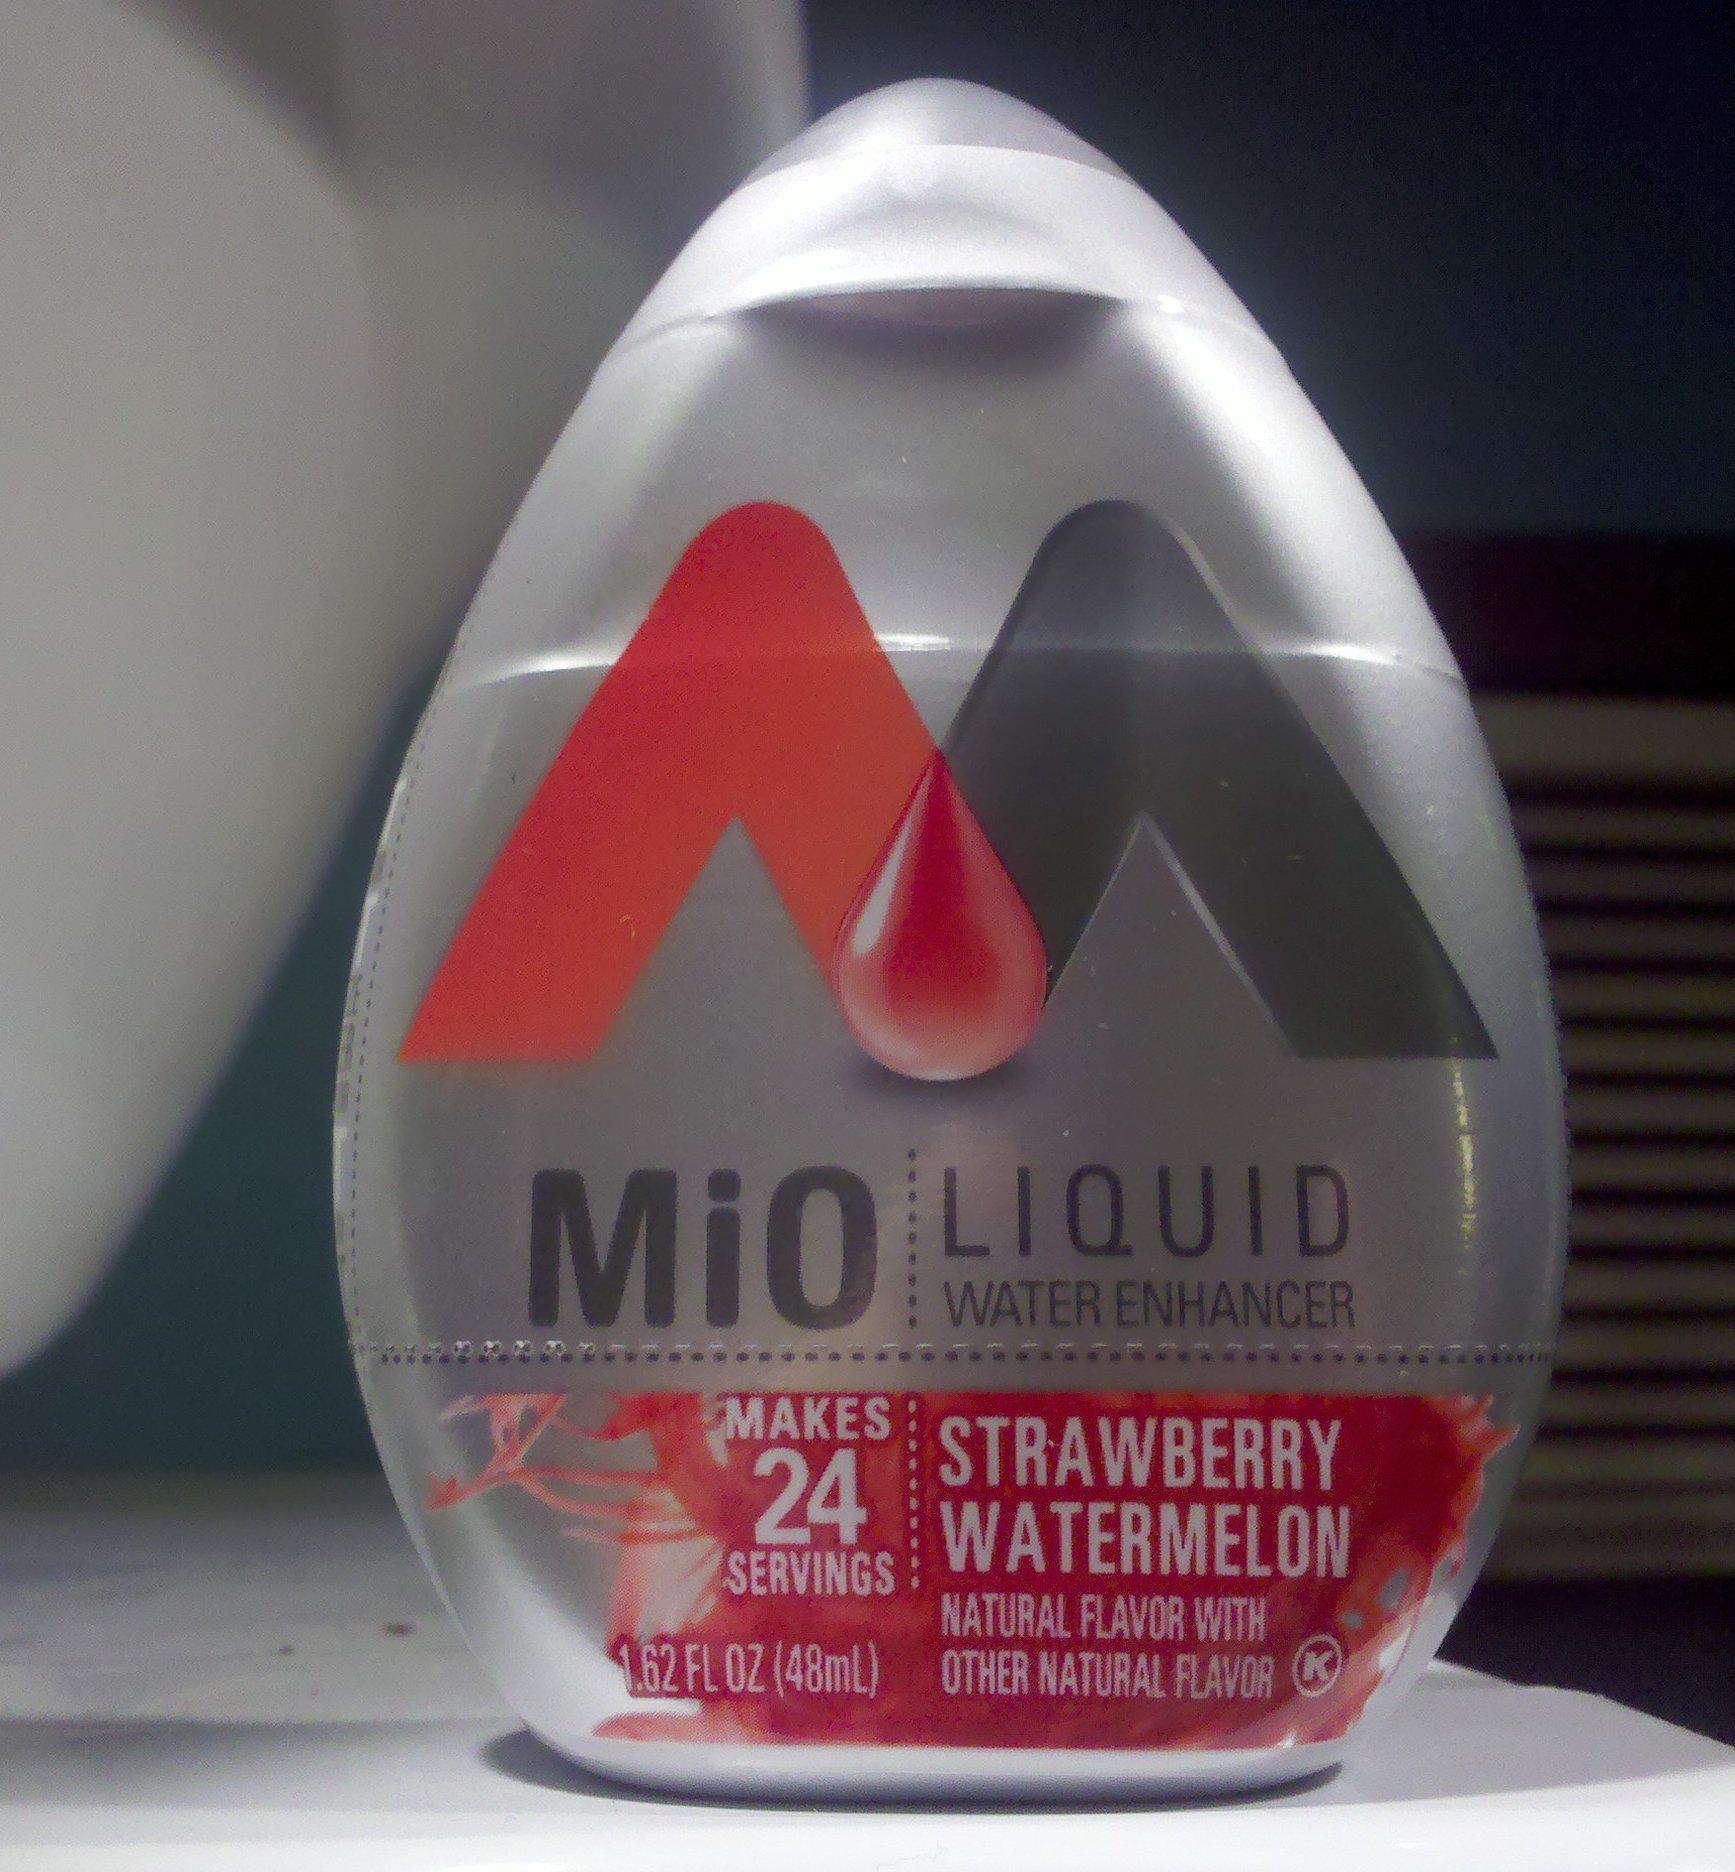 Mio Water Enhancer Commercial